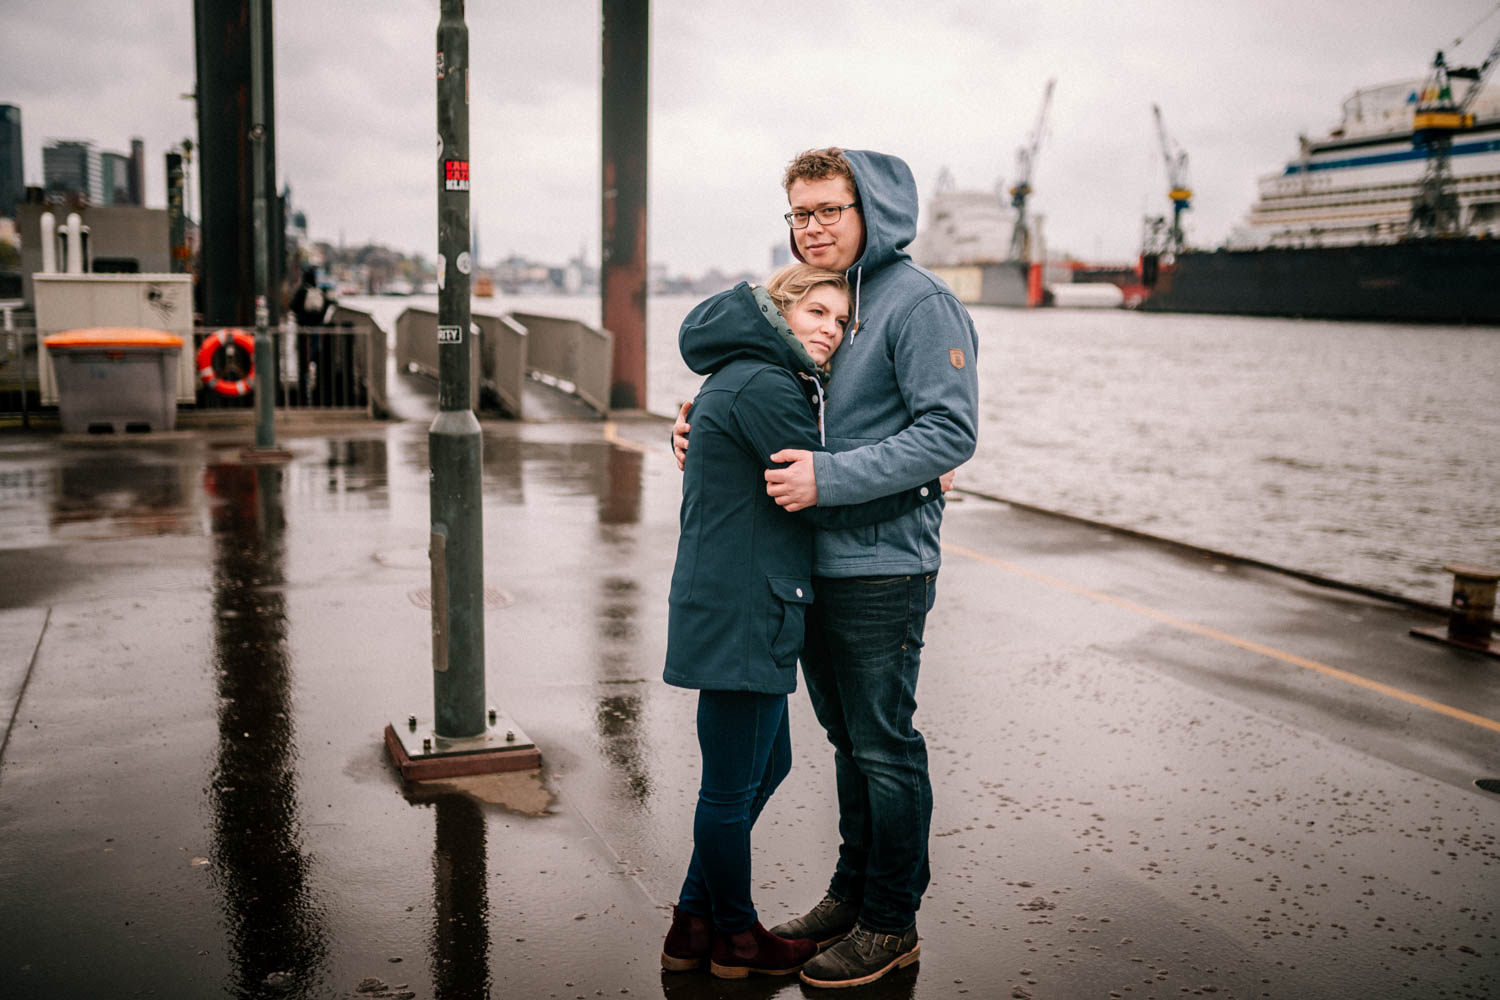 Engagementshooting, Hochzeitsfieber by Photo-Schomburg, Pärchenshoot, Hamburg, Elbe, Hamburger Hafen, Hochzeitsfotograf, Wedding, Coupleshoot-6